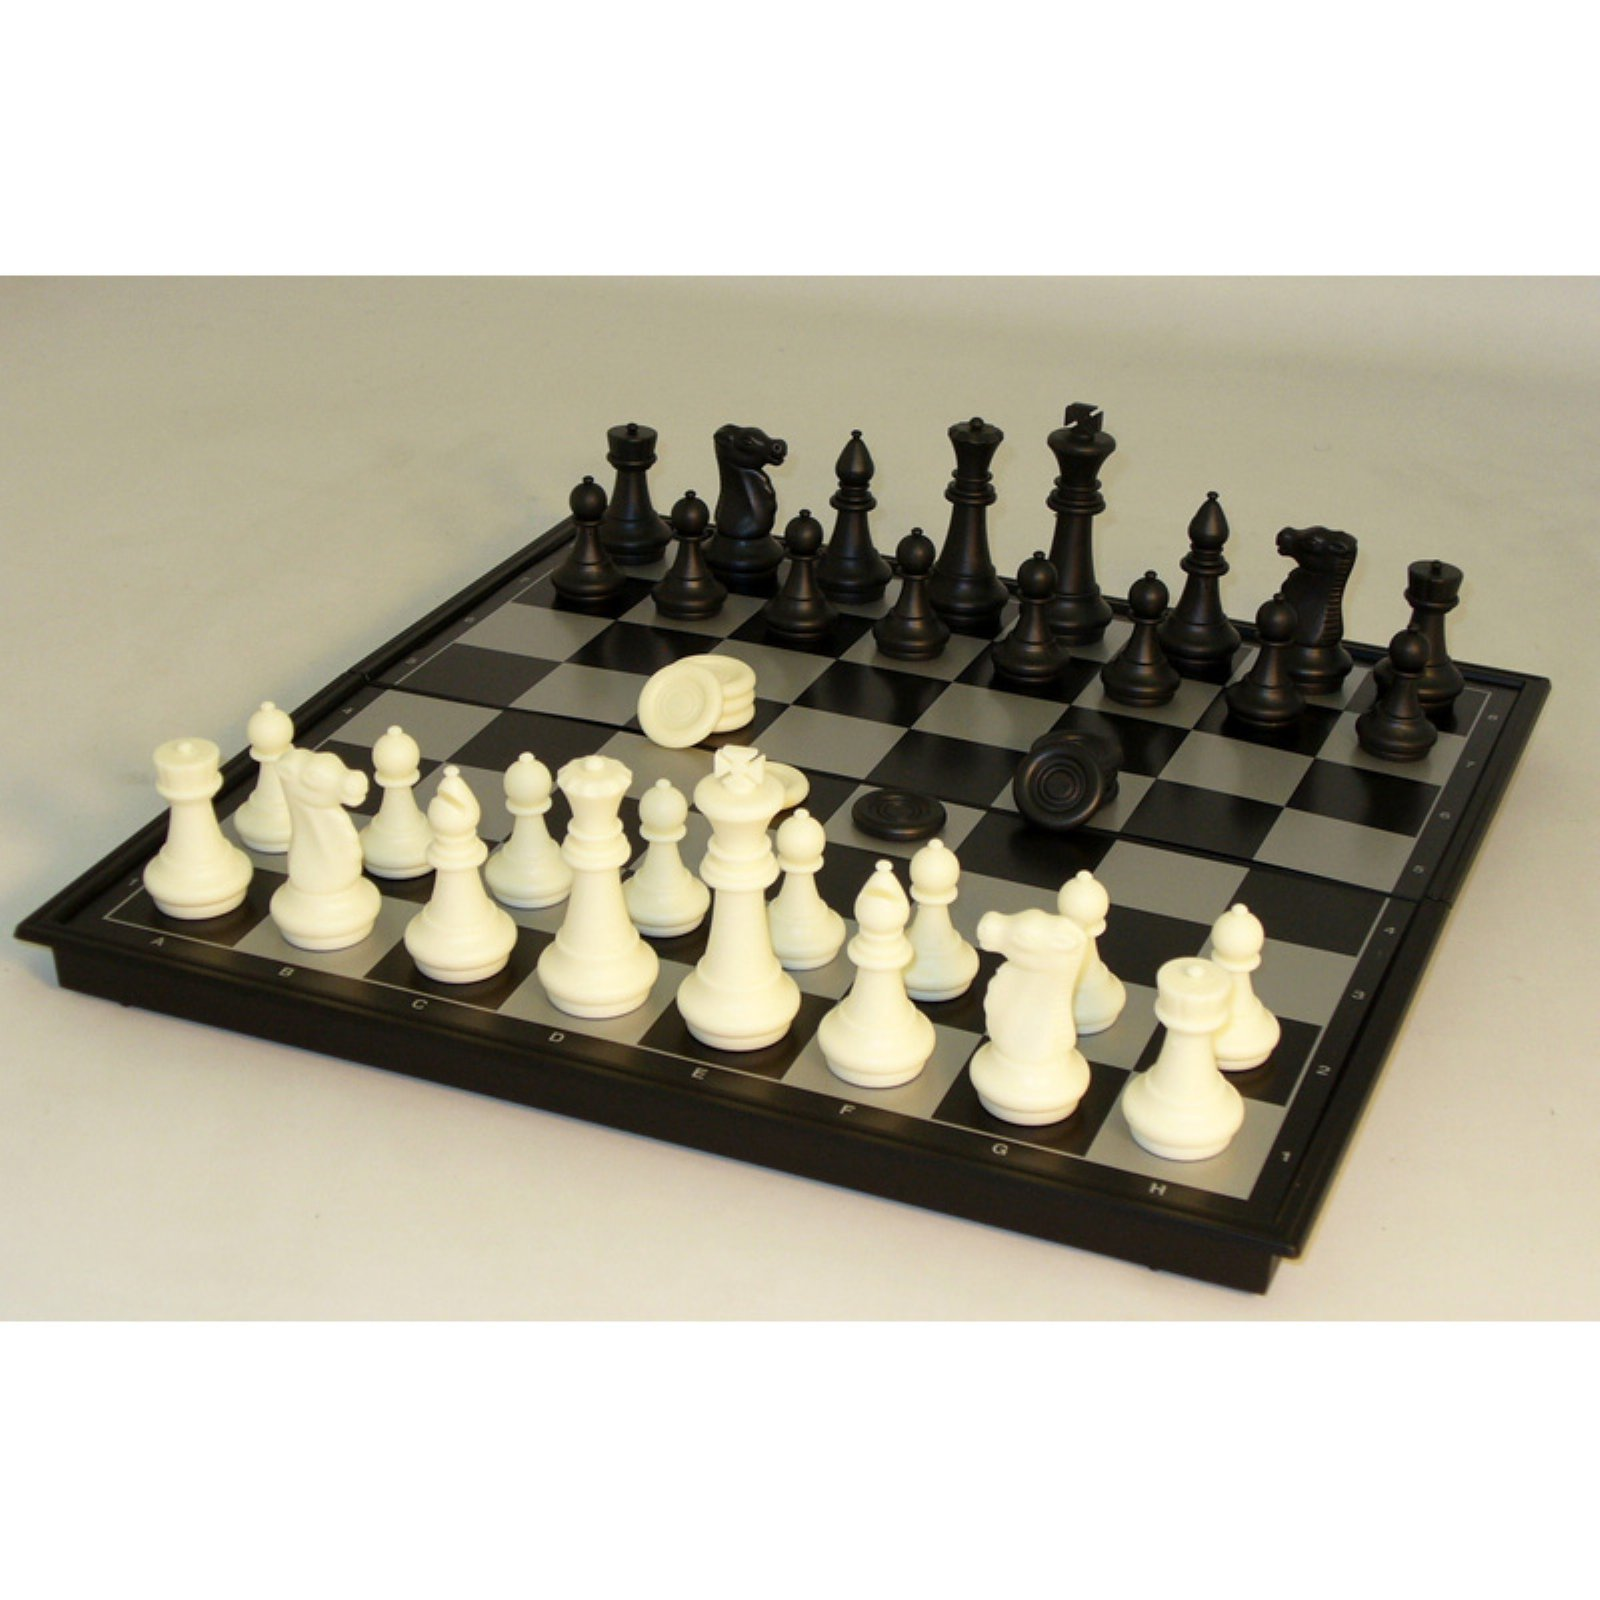 WorldWise 14 in. Magnetic Chess Set with Checkers